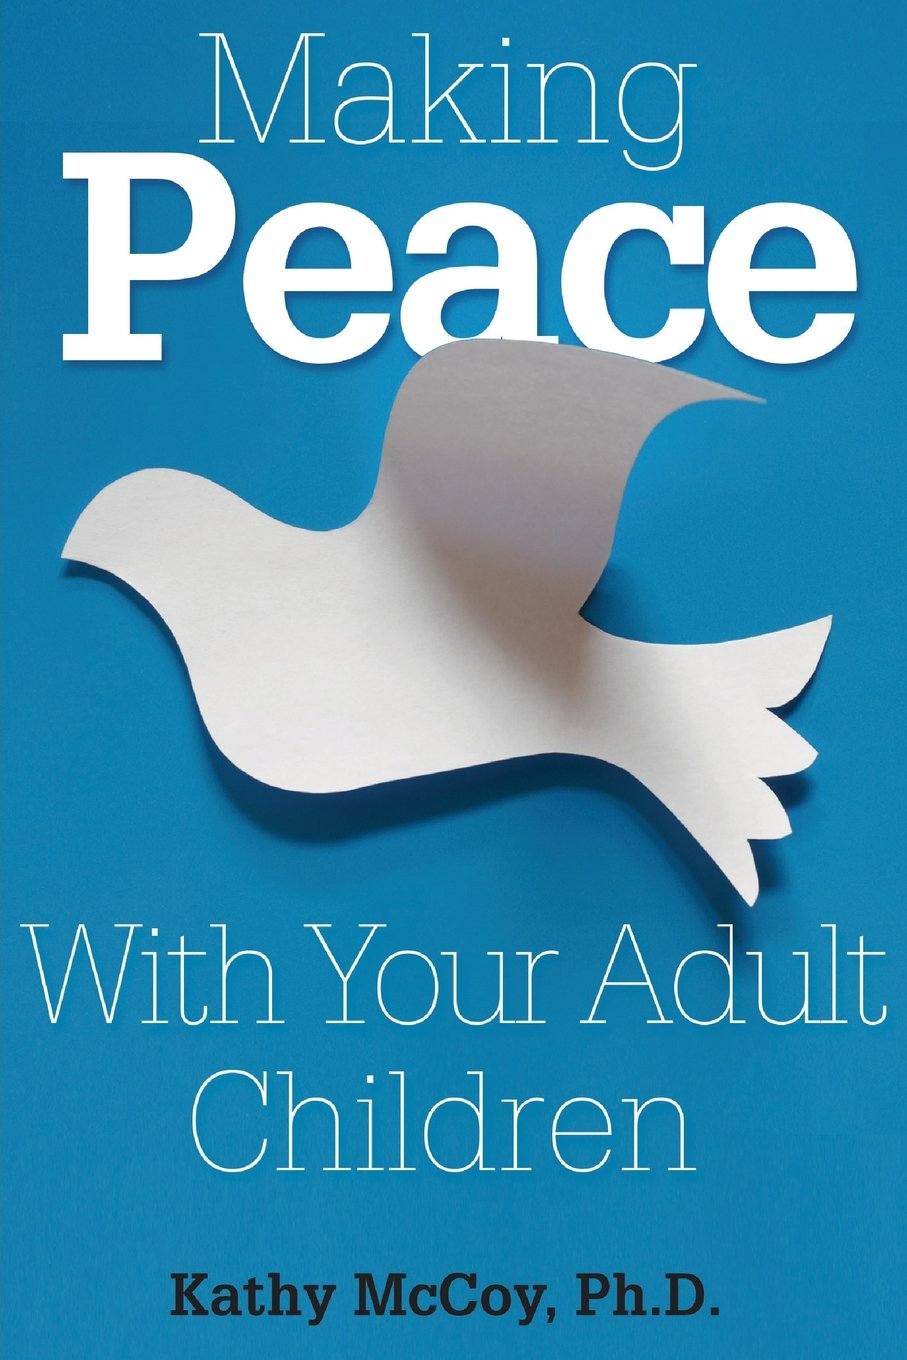 Making Peace With Your Adult Children: Ph.D. Kathy McCoy: 9781629213729:  Amazon.com: Books